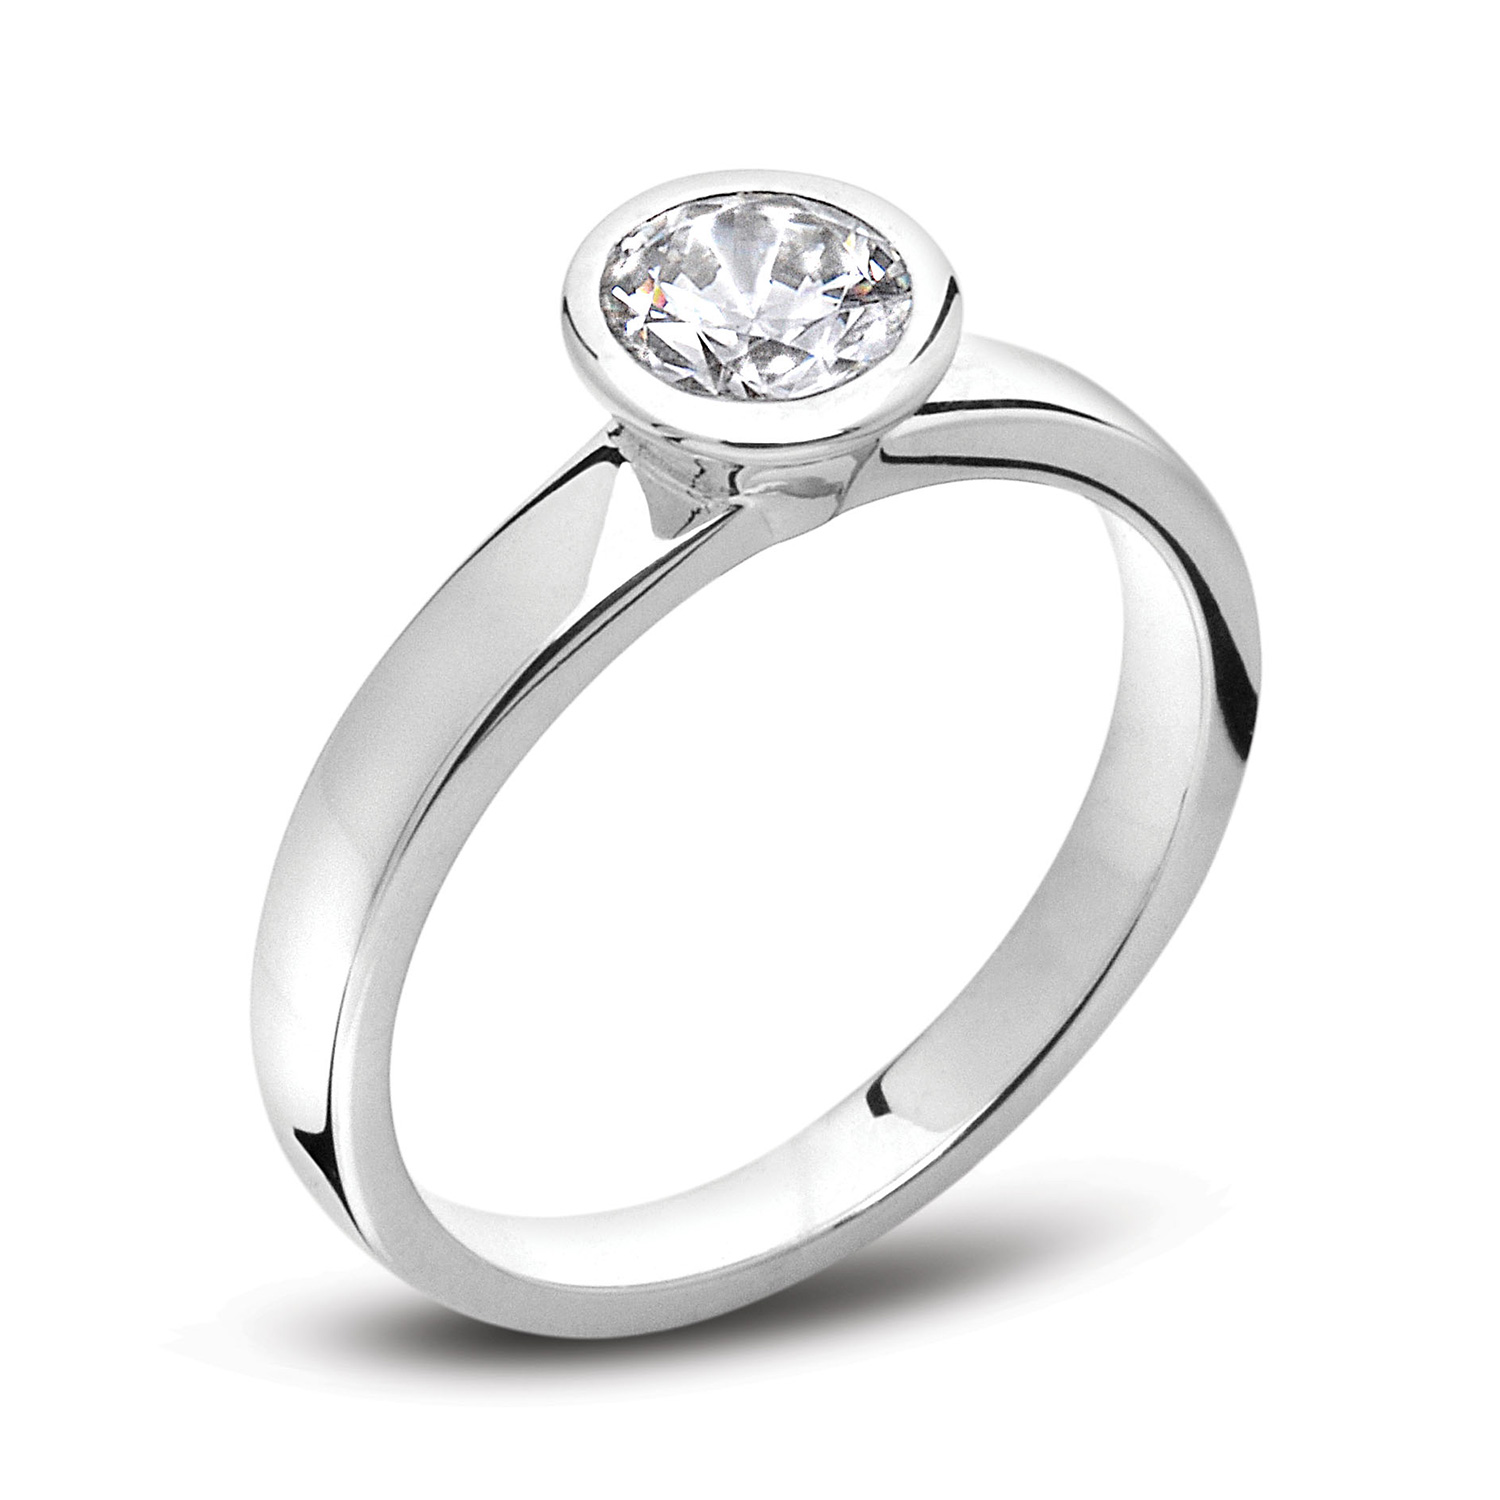 SIMPLE RUB-OVER DIAMOND ENGAGEMENT RING